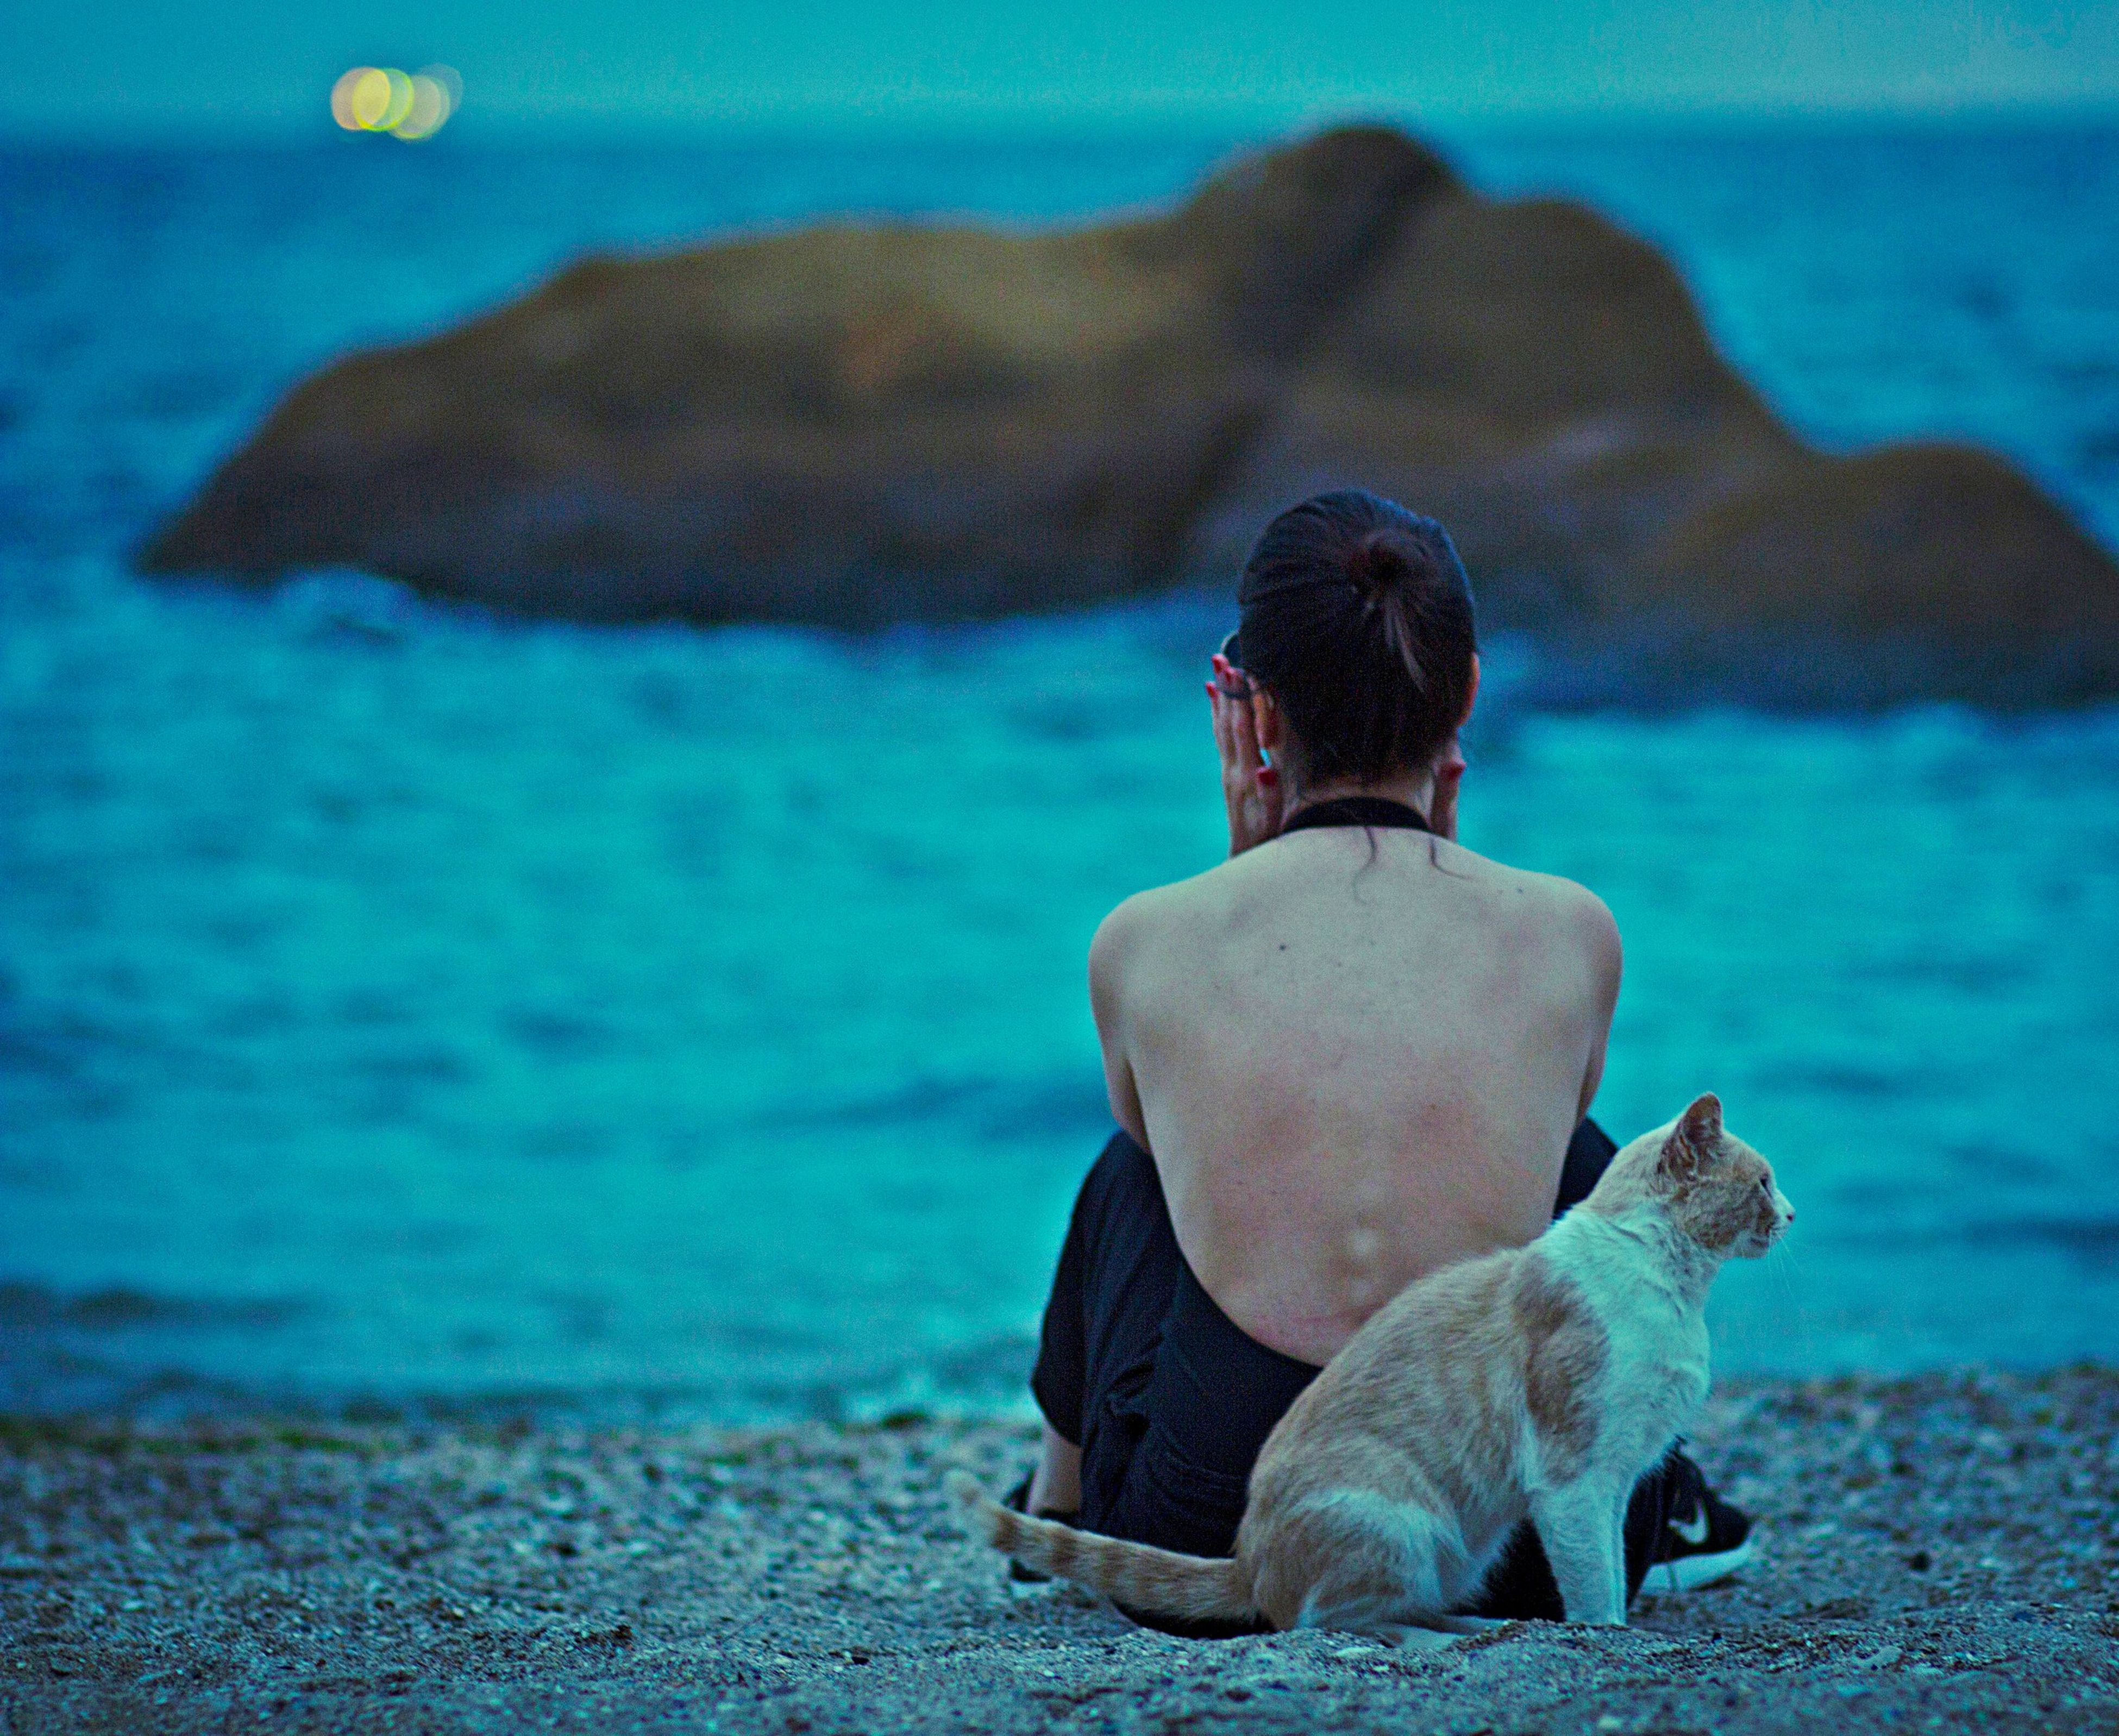 rear view, beach, focus on foreground, sea, sitting, water, casual clothing, leisure activity, vacations, relaxation, in front of, person, shore, scenics, tranquil scene, day, getting away from it all, nature, tranquility, medium-length hair, carefree, black hair, weekend activities, solitude, outdoors, beauty in nature, loneliness